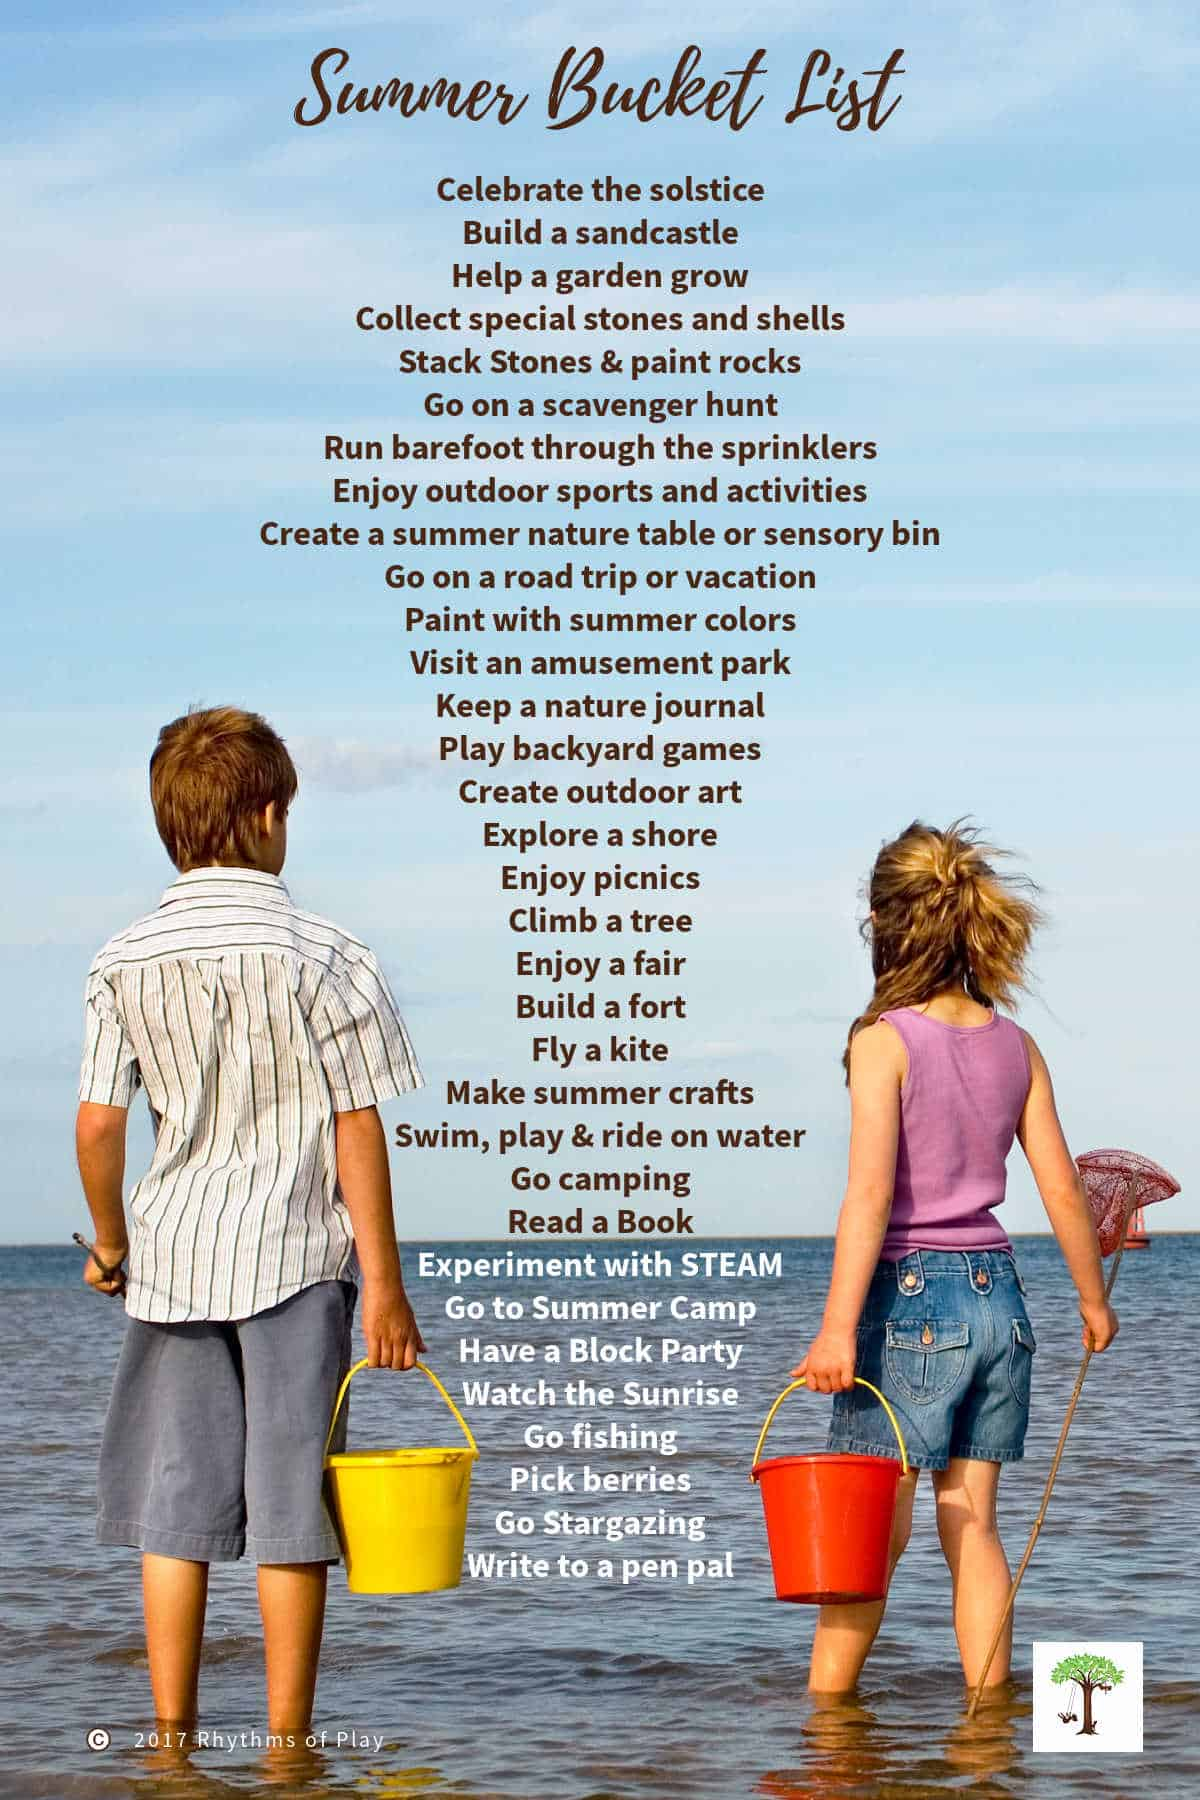 Boy and a girl standing in the water with summer bucket list of fun activities